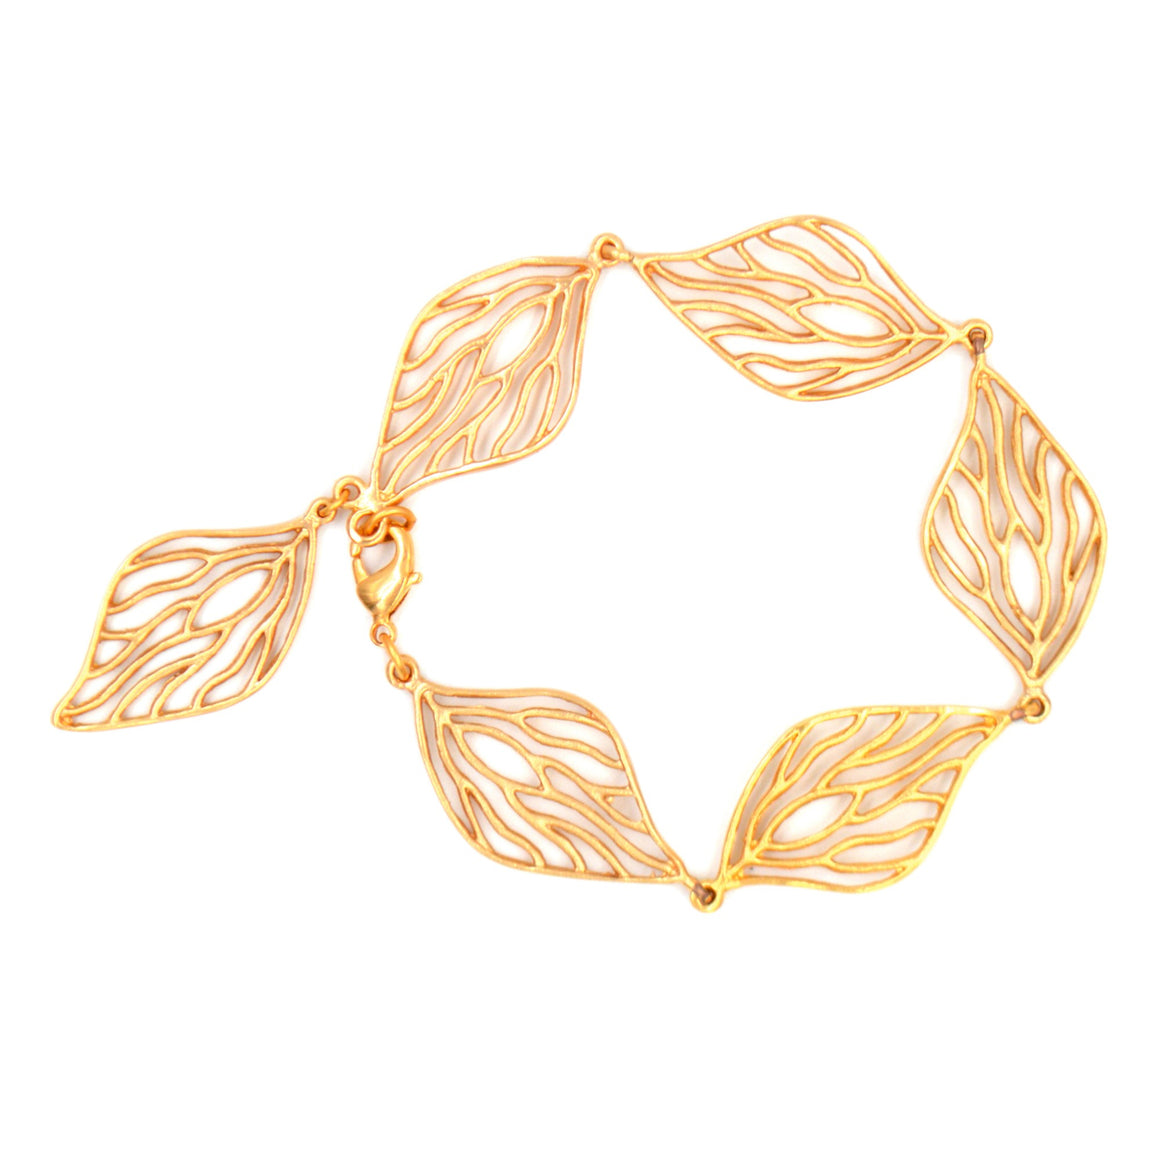 Open Leaf Link Bracelet - 24K Gold Plated